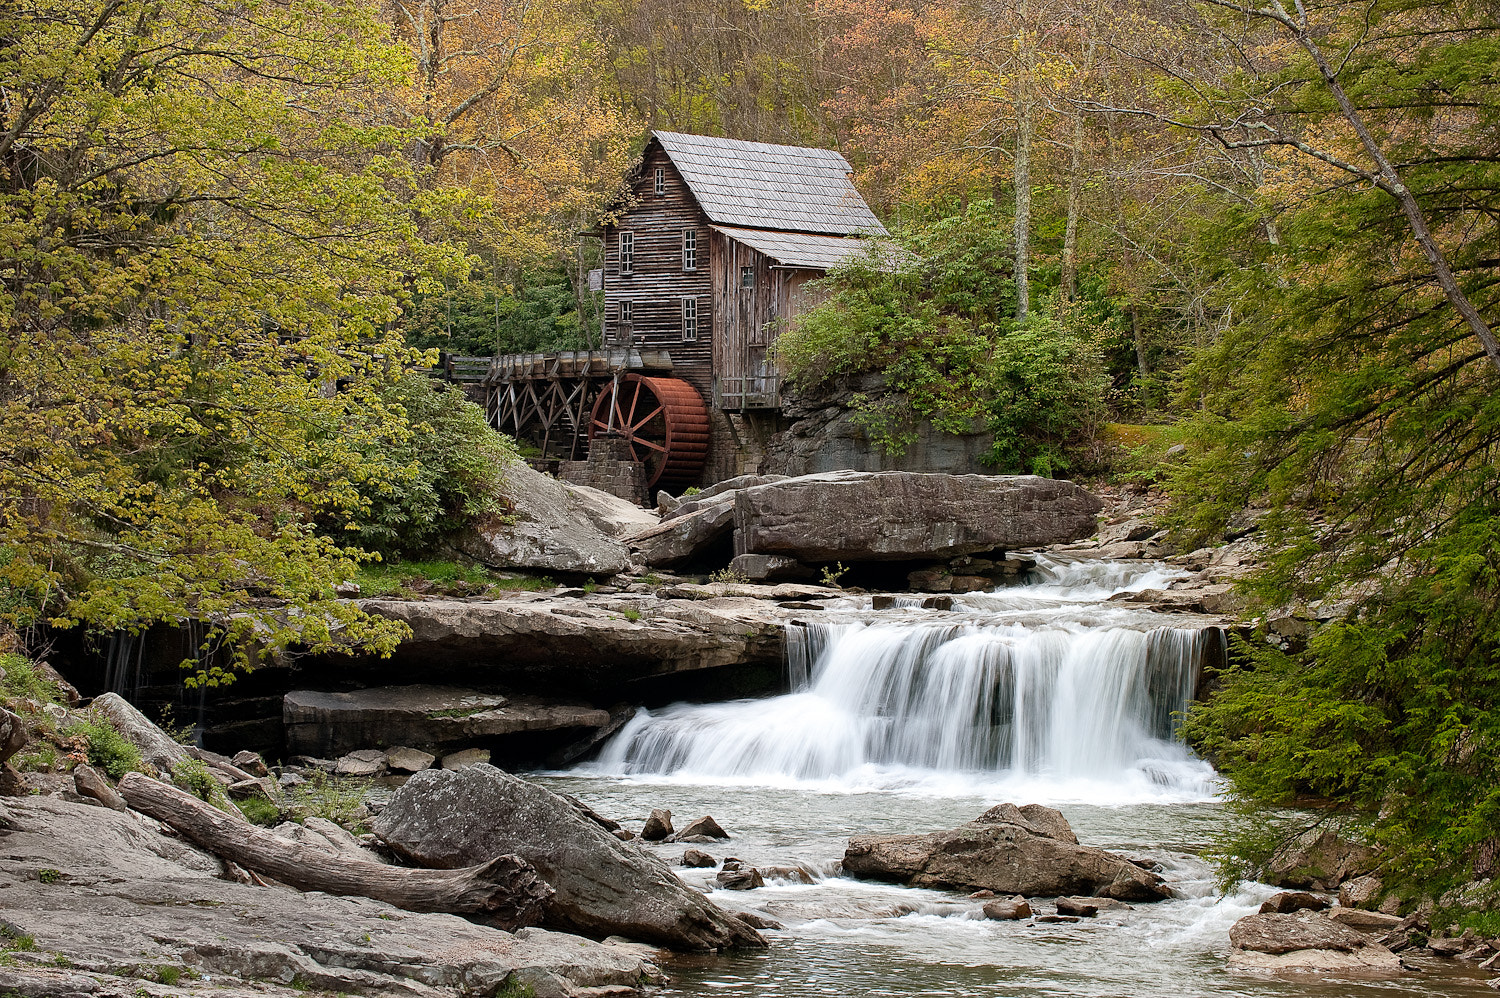 Photograph Glade Mill Creek by Duncan McKinnon on 500px